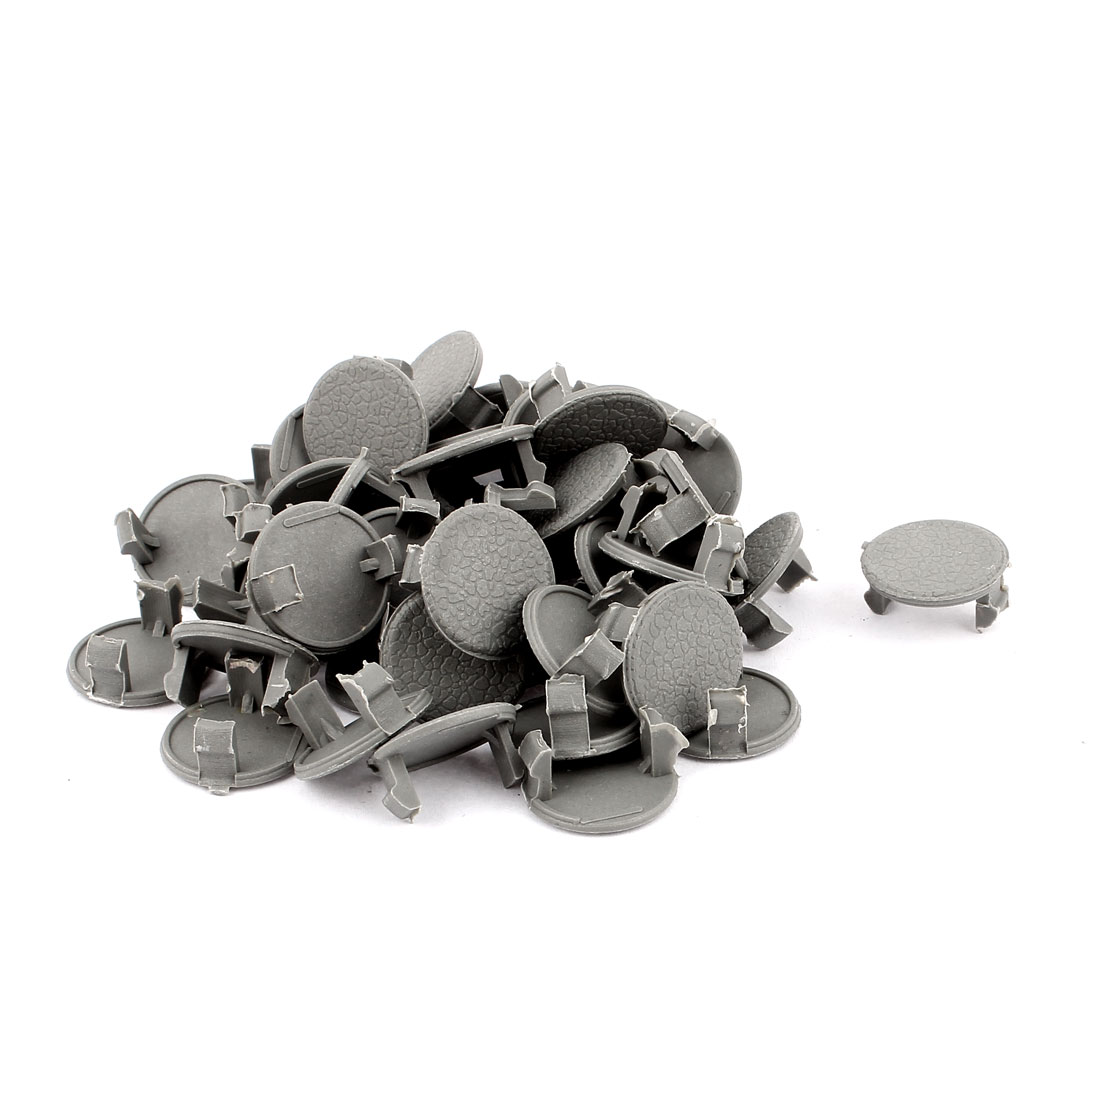 Plastic Rivets Auto Car Fastener Clips 22mm Head Diameter Gray 50 Pcs